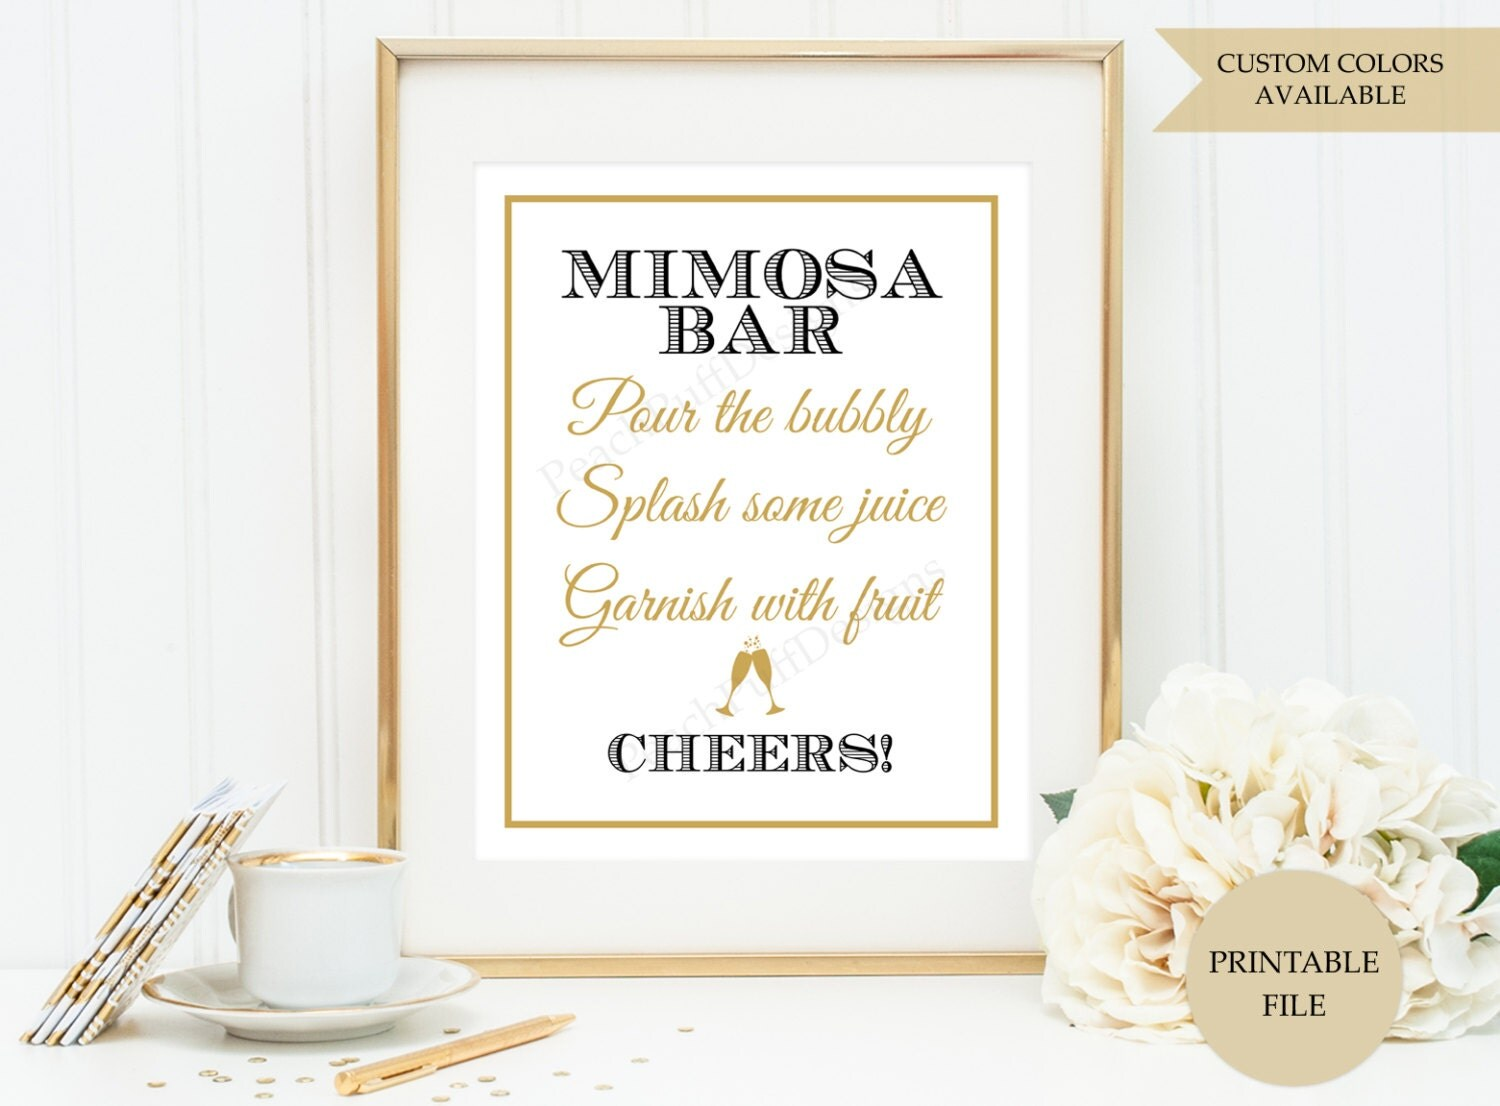 Superb image within mimosa bar printable